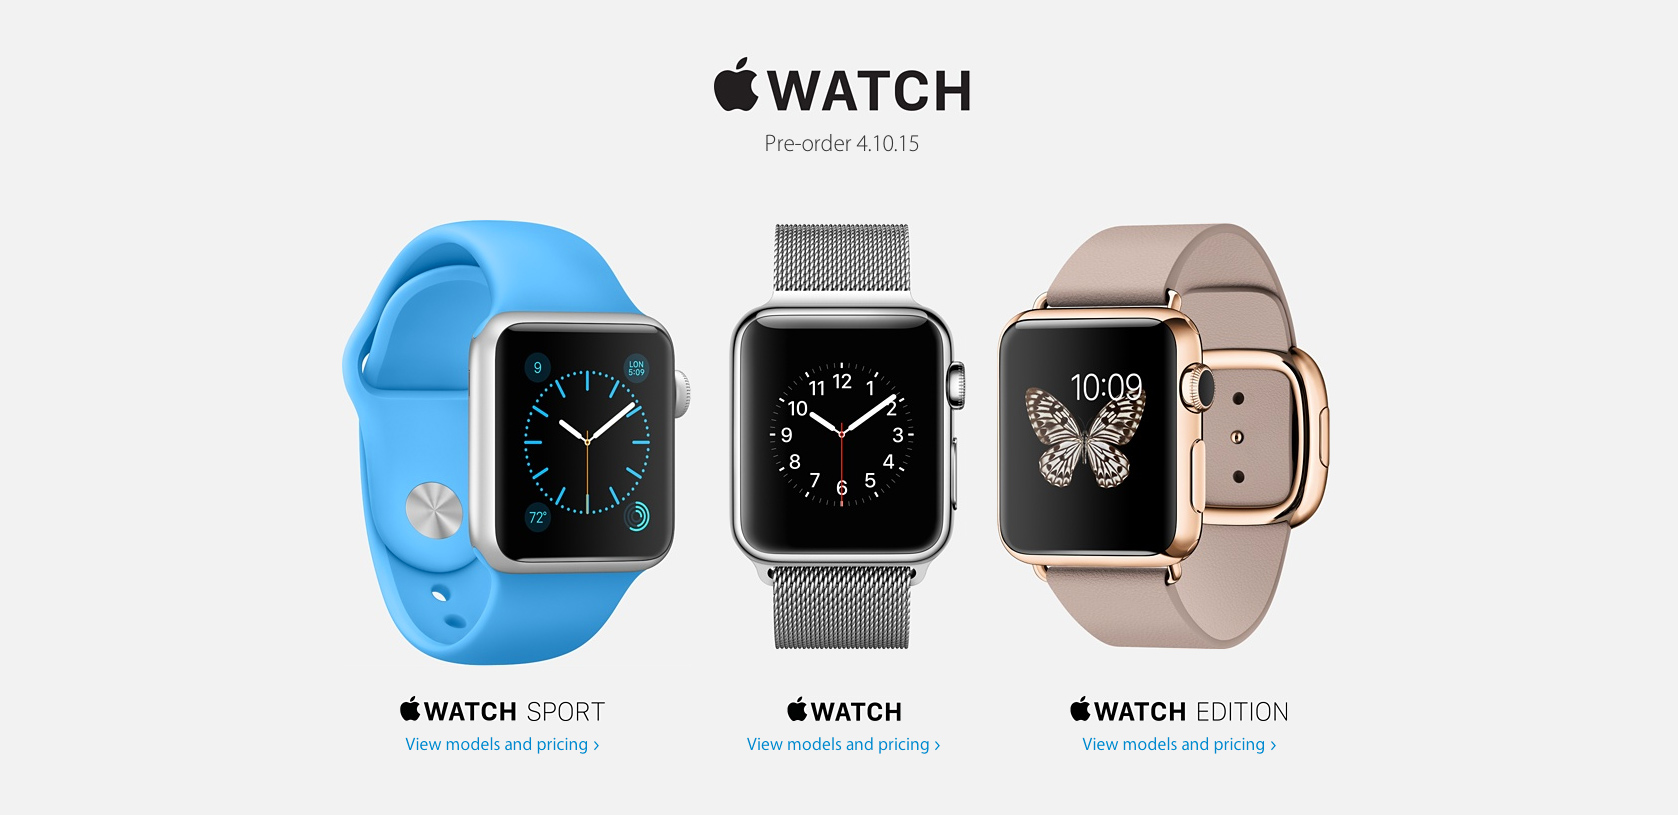 Op-Ed: Cupertino made some costly mistakes with the Apple Watch